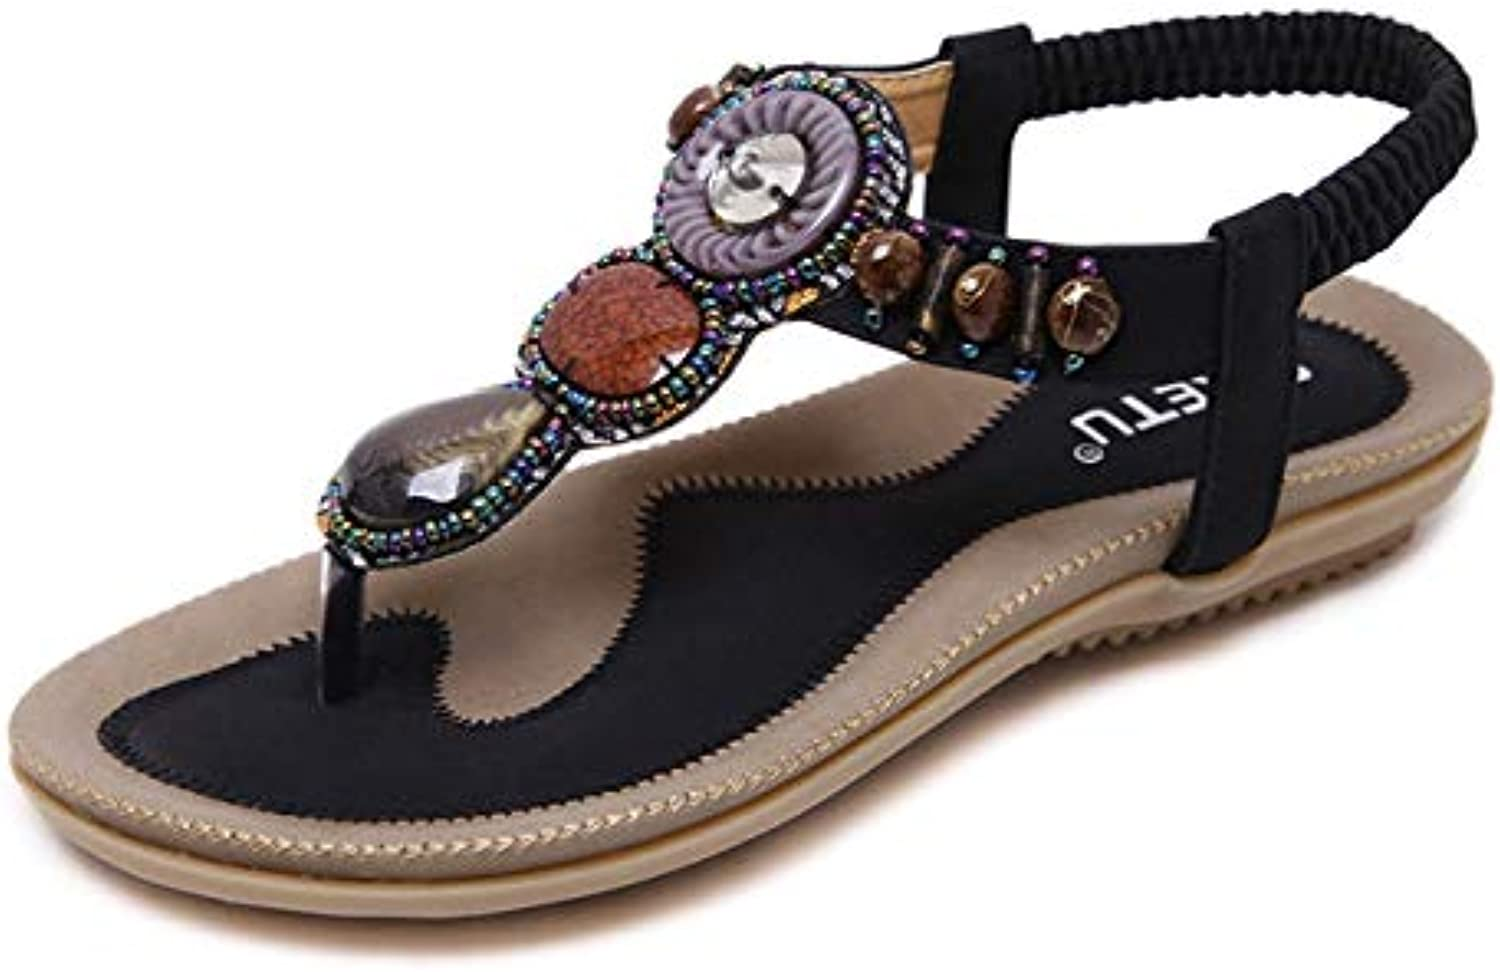 Women's Flat Sandals, Summer Beach shoes Large Size Casual Bohemian Beaded Comfortable Flat Flip-Flops,Suitable for Daily Wear, Home, Vacation